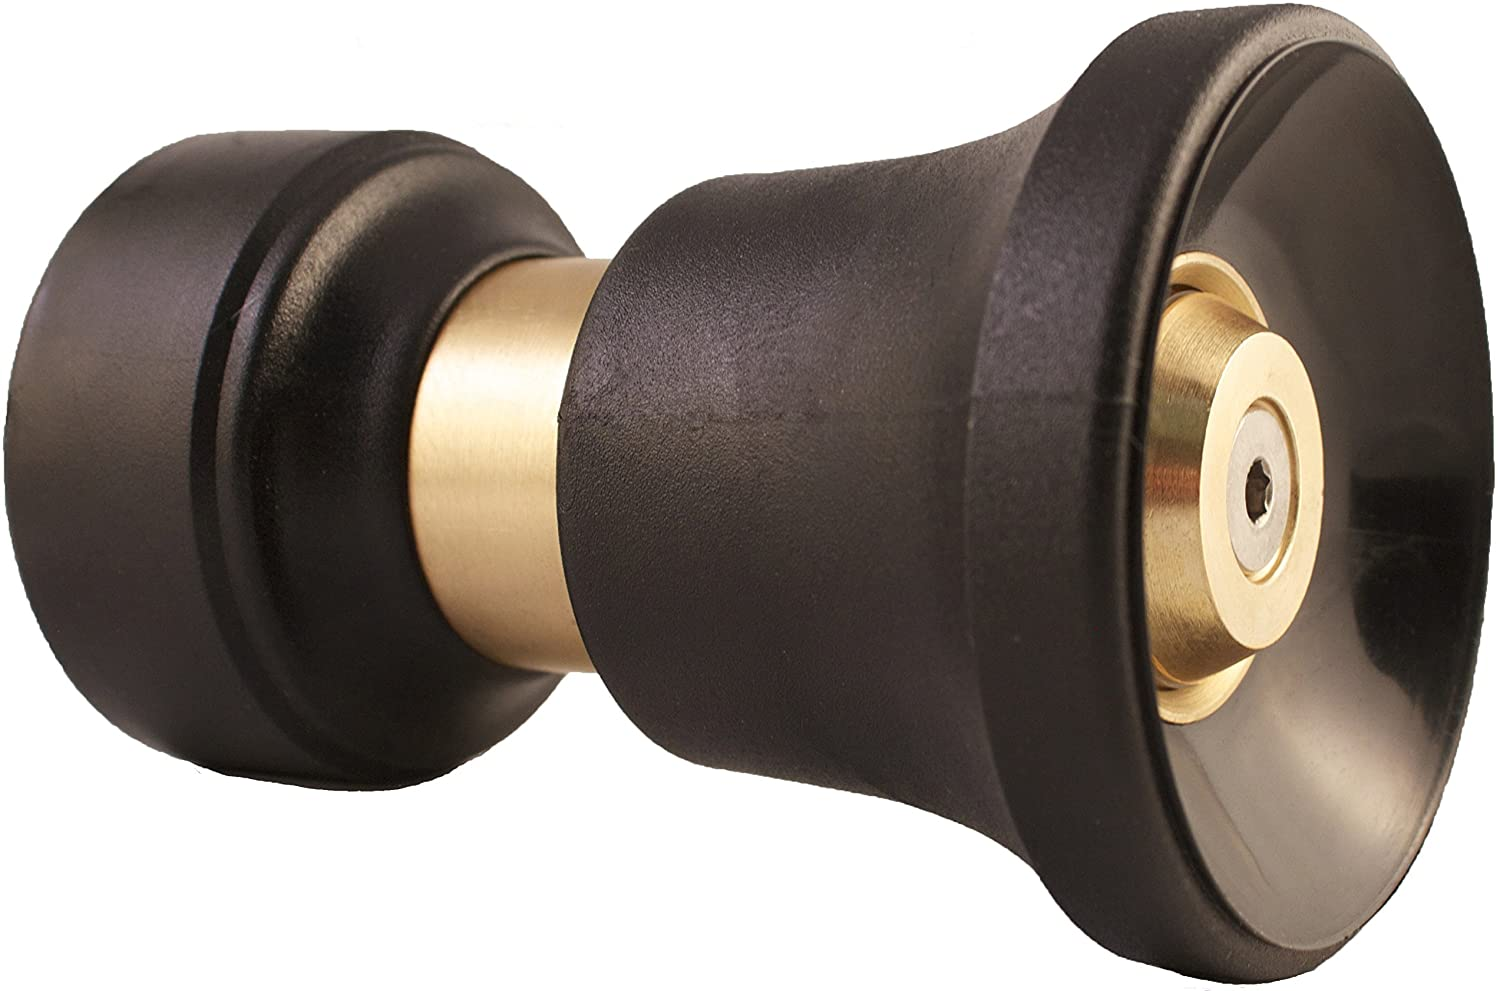 Dradco Heavy Duty Brass Fireman Style Hose Nozzle - Fits All Standard Garden Hoses - Best High Pressure Sprayer to Wash Your Car or Water Your Garden – Leak Proof - 30 Day No-Hassle Guarantee: Automotive